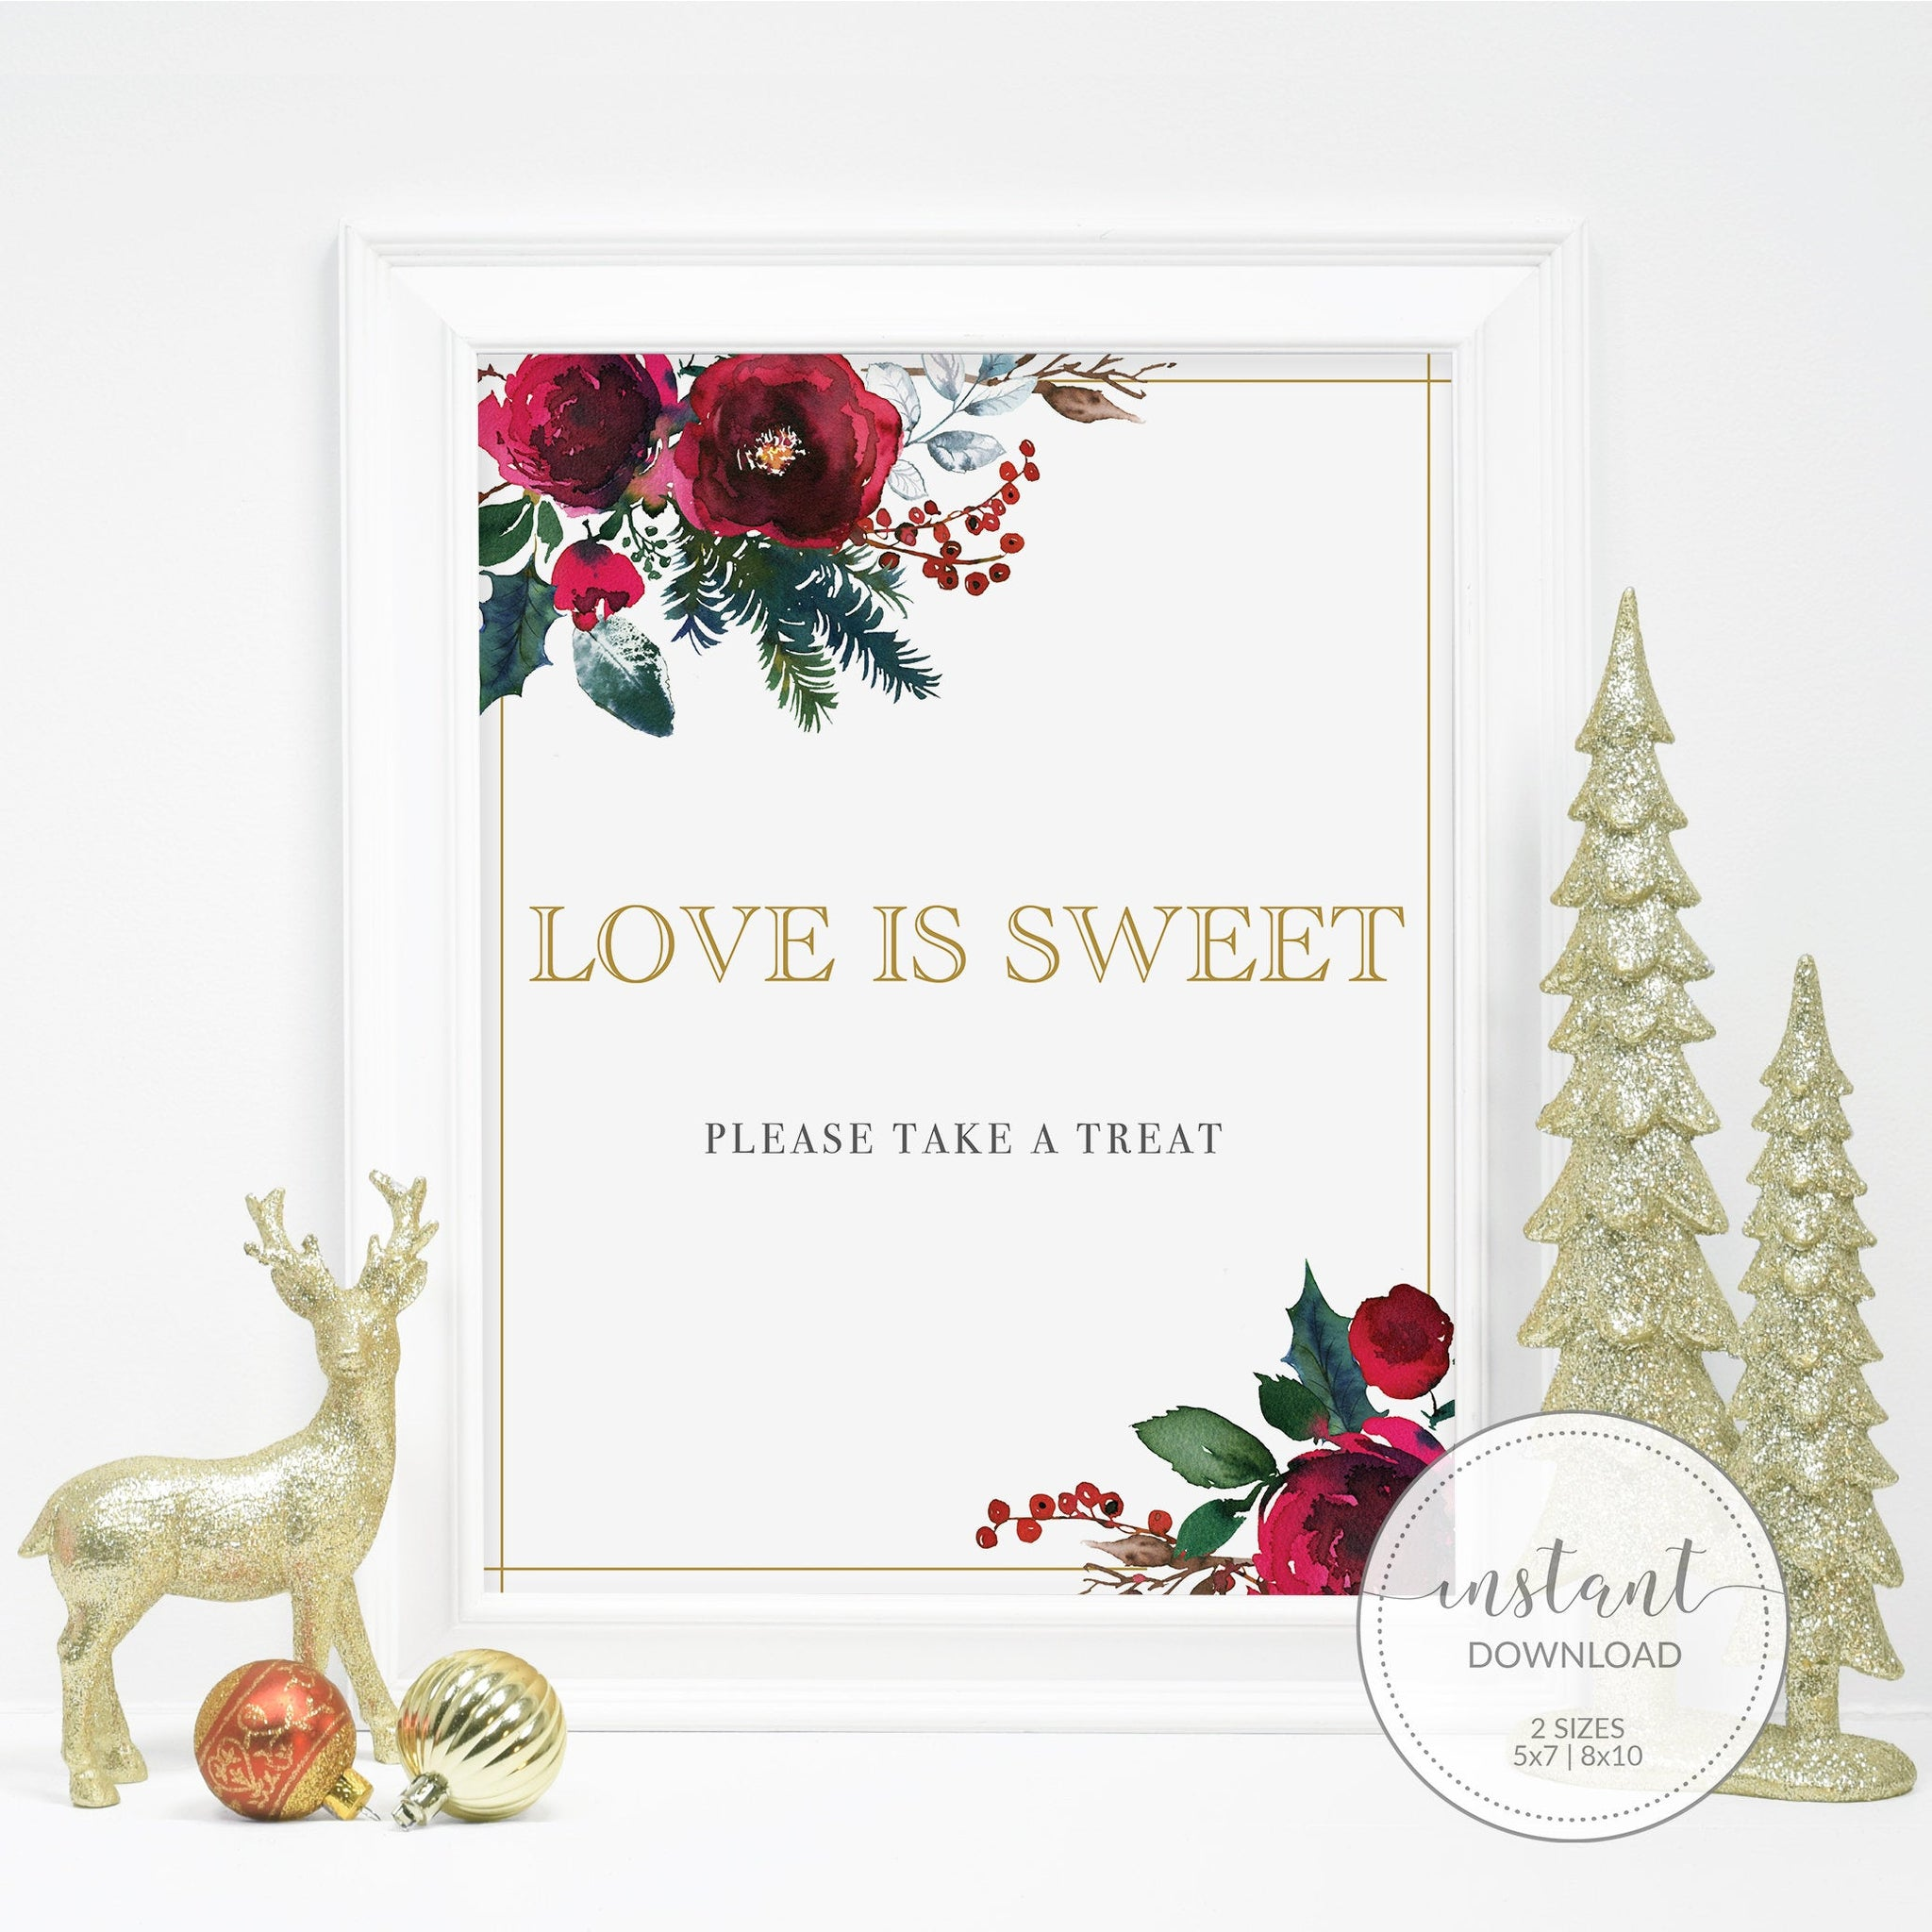 Christmas Bridal Shower Treat Sign Printable, Love is Sweet Dessert Table Sign, Winter Bridal Shower Decorations, INSTANT DOWNLOAD - CG100 - @PlumPolkaDot